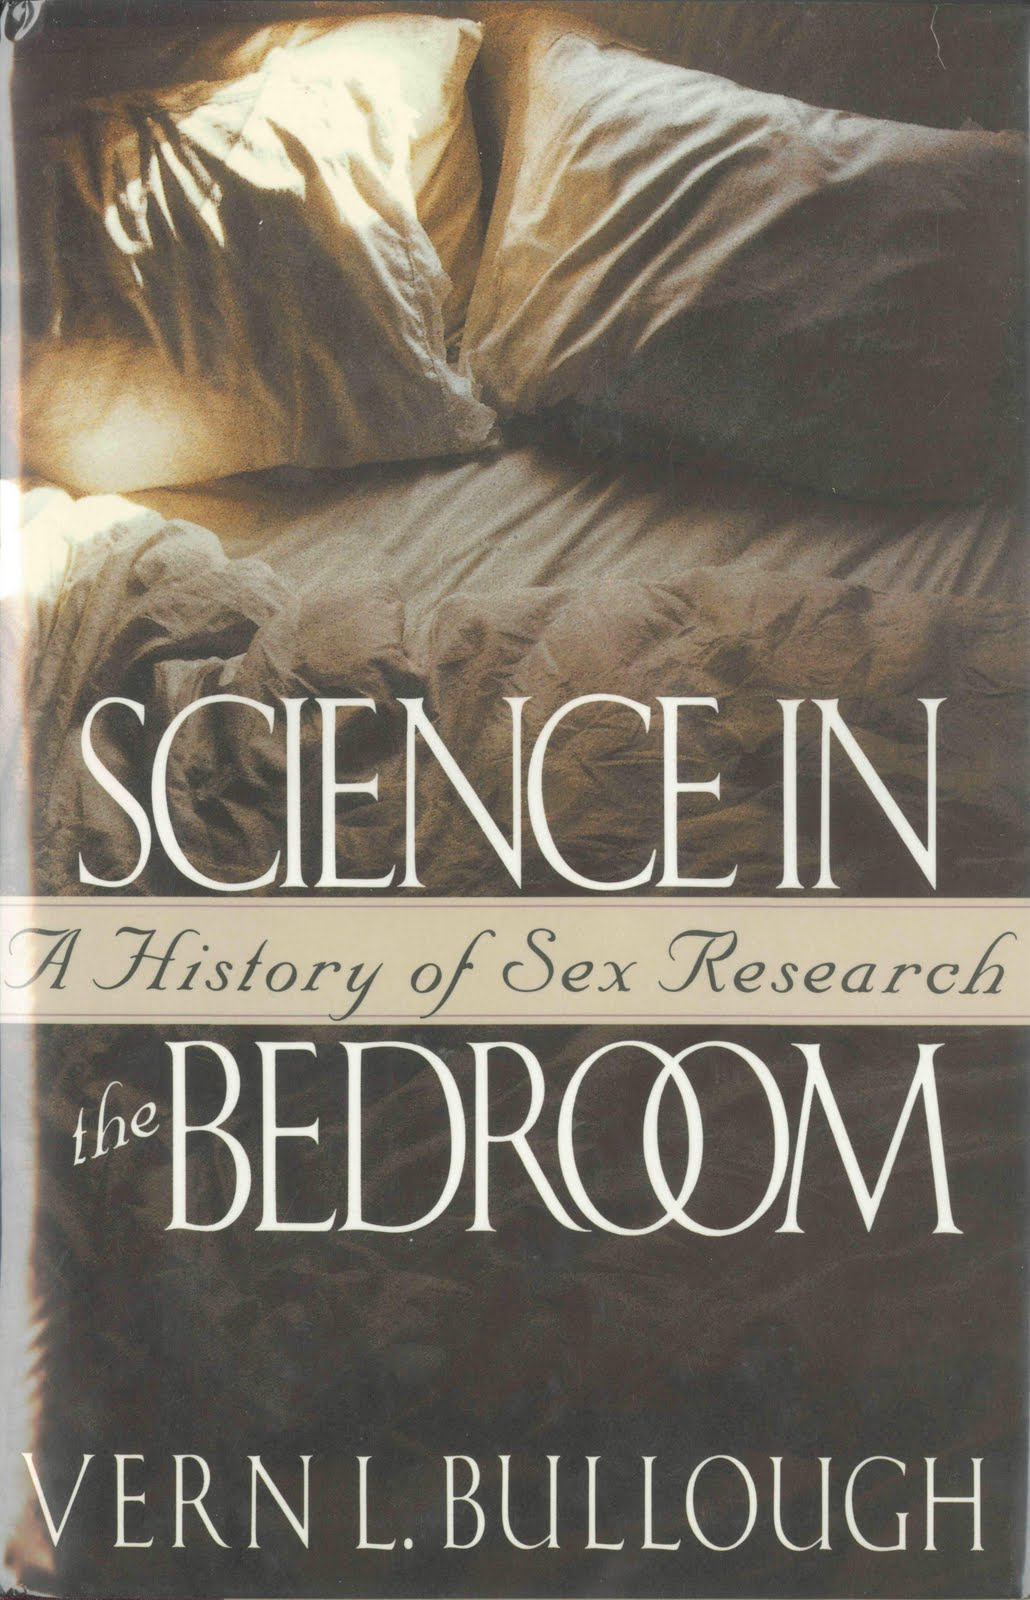 a history of sexuality 1 the history of sexuality: an introduction, volume 1 by michel foucault outline by philip turetzky, turetzky@colostateedu part one: we other victorians 1) before 17th c was supposedly an age of frankness w/o shame re: bodies.